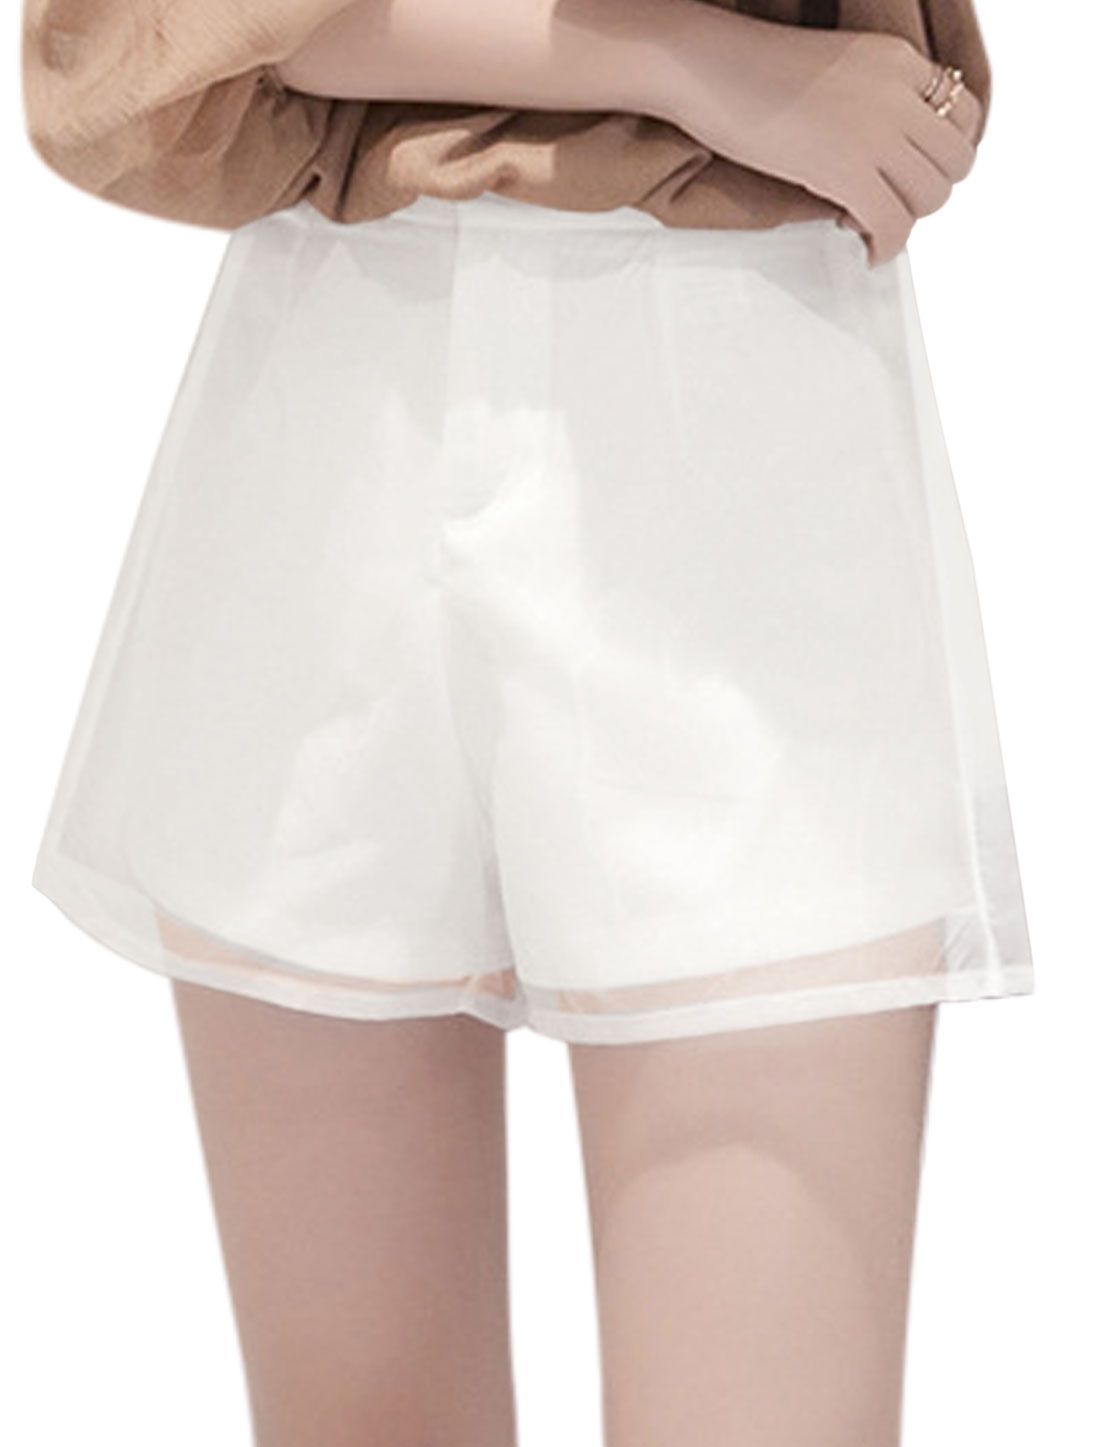 Women Hook Eye Closed Zip Fly Organza Panel A-line Shorts White M